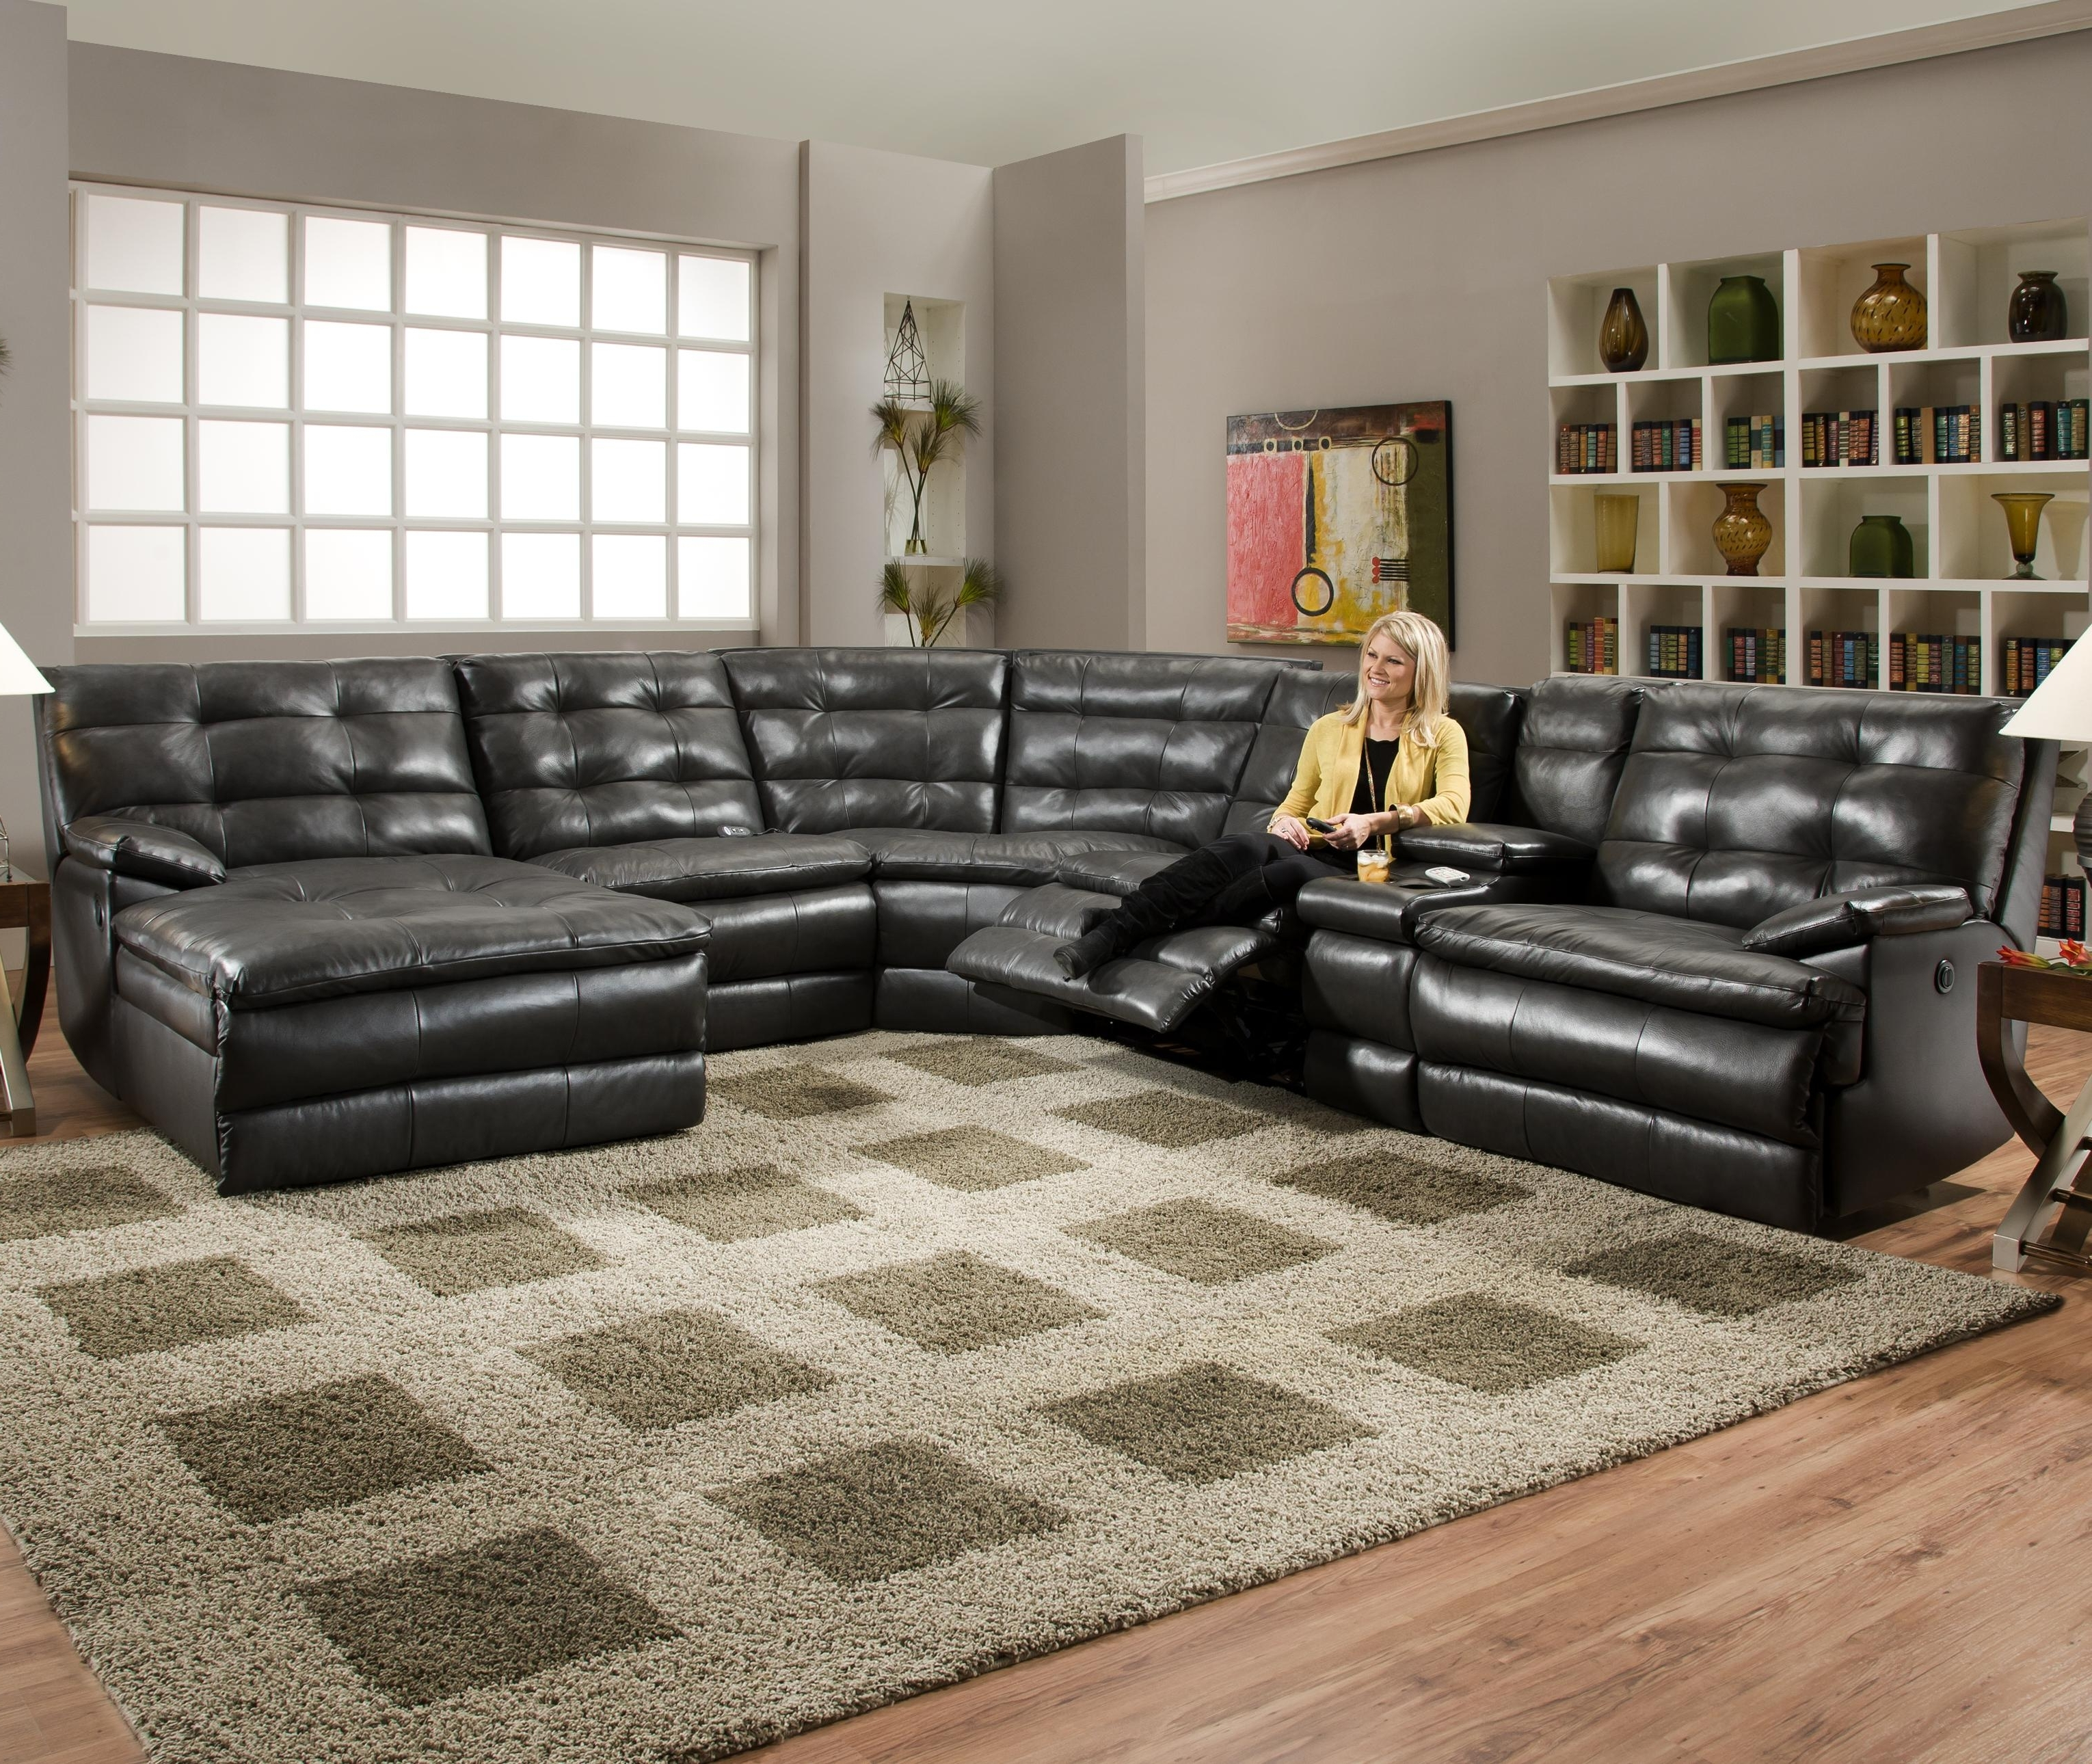 Trendy Cincinnati Sectional Sofas With Regard To Luxurious Tufted Leather Sectional Sofa In Classy Black Color With (View 19 of 20)